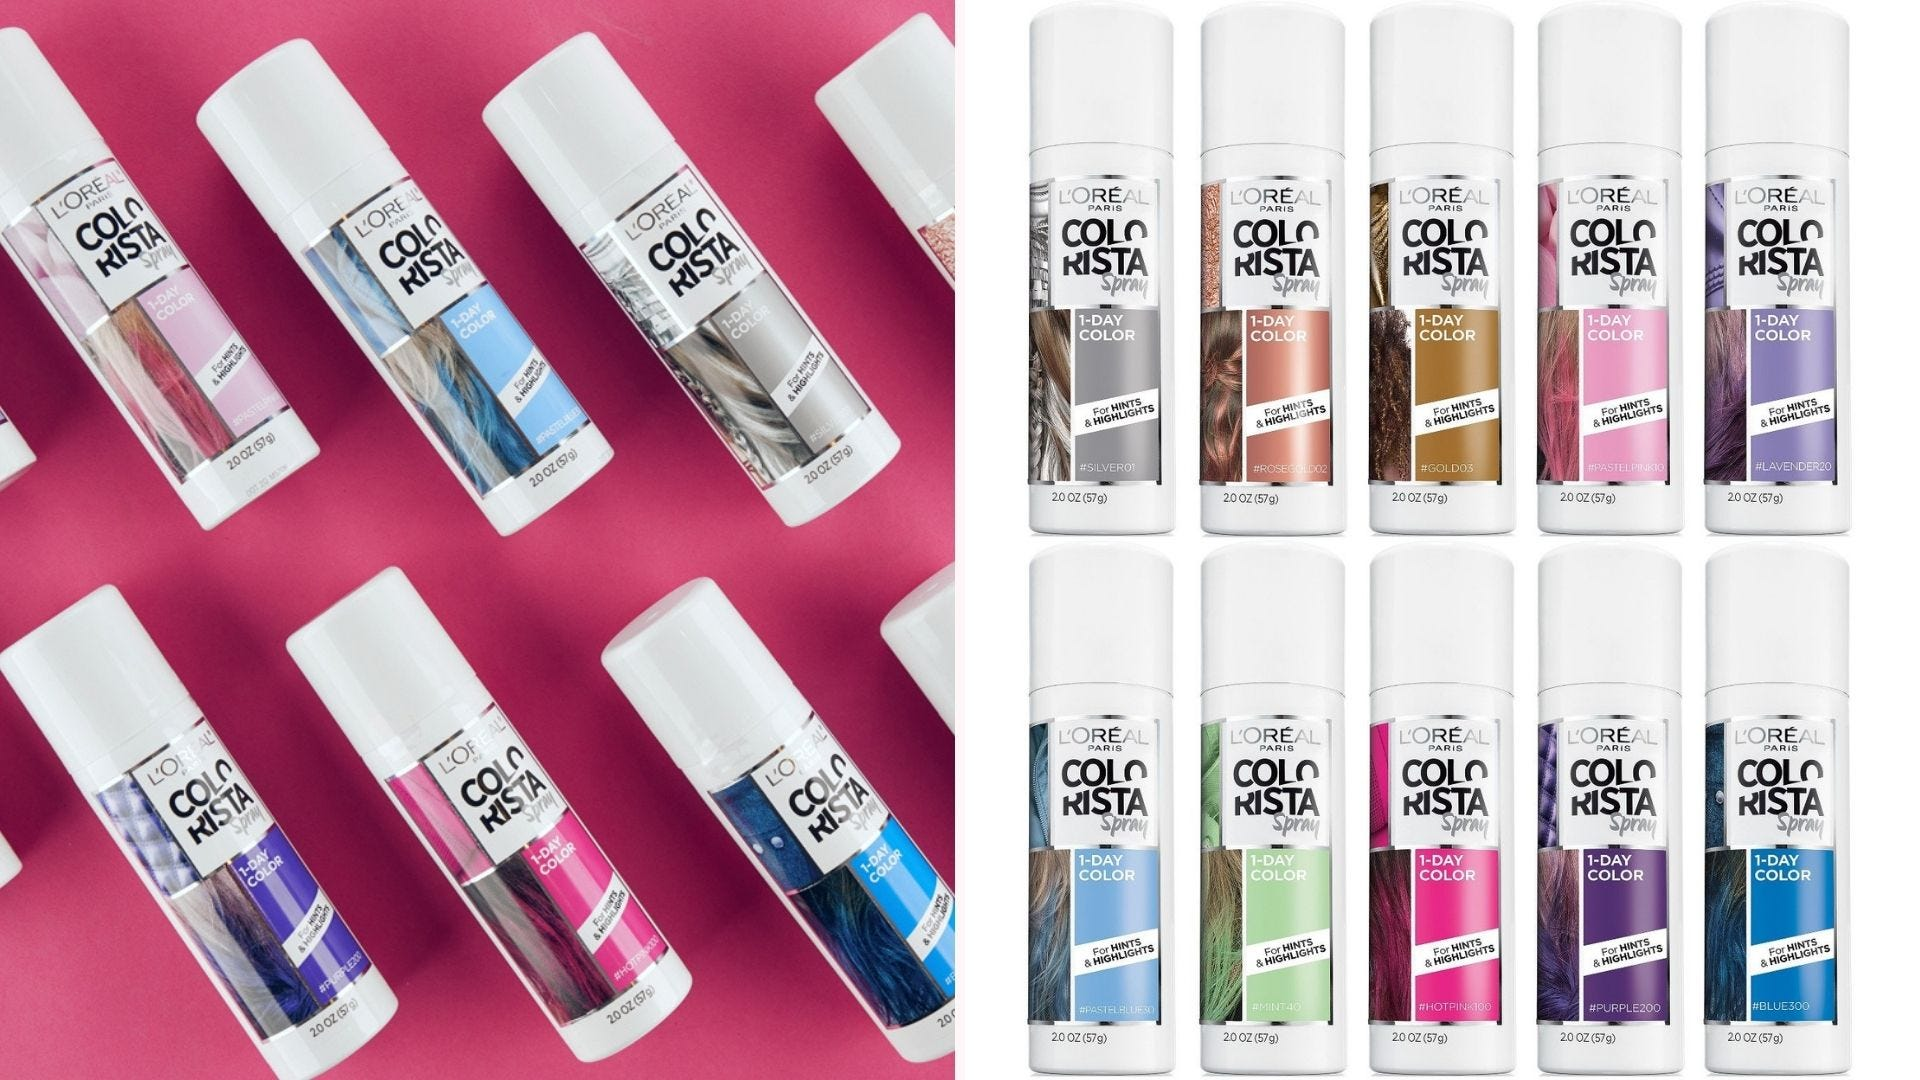 Several small bottles of Colorista One-Day Spray in various colors